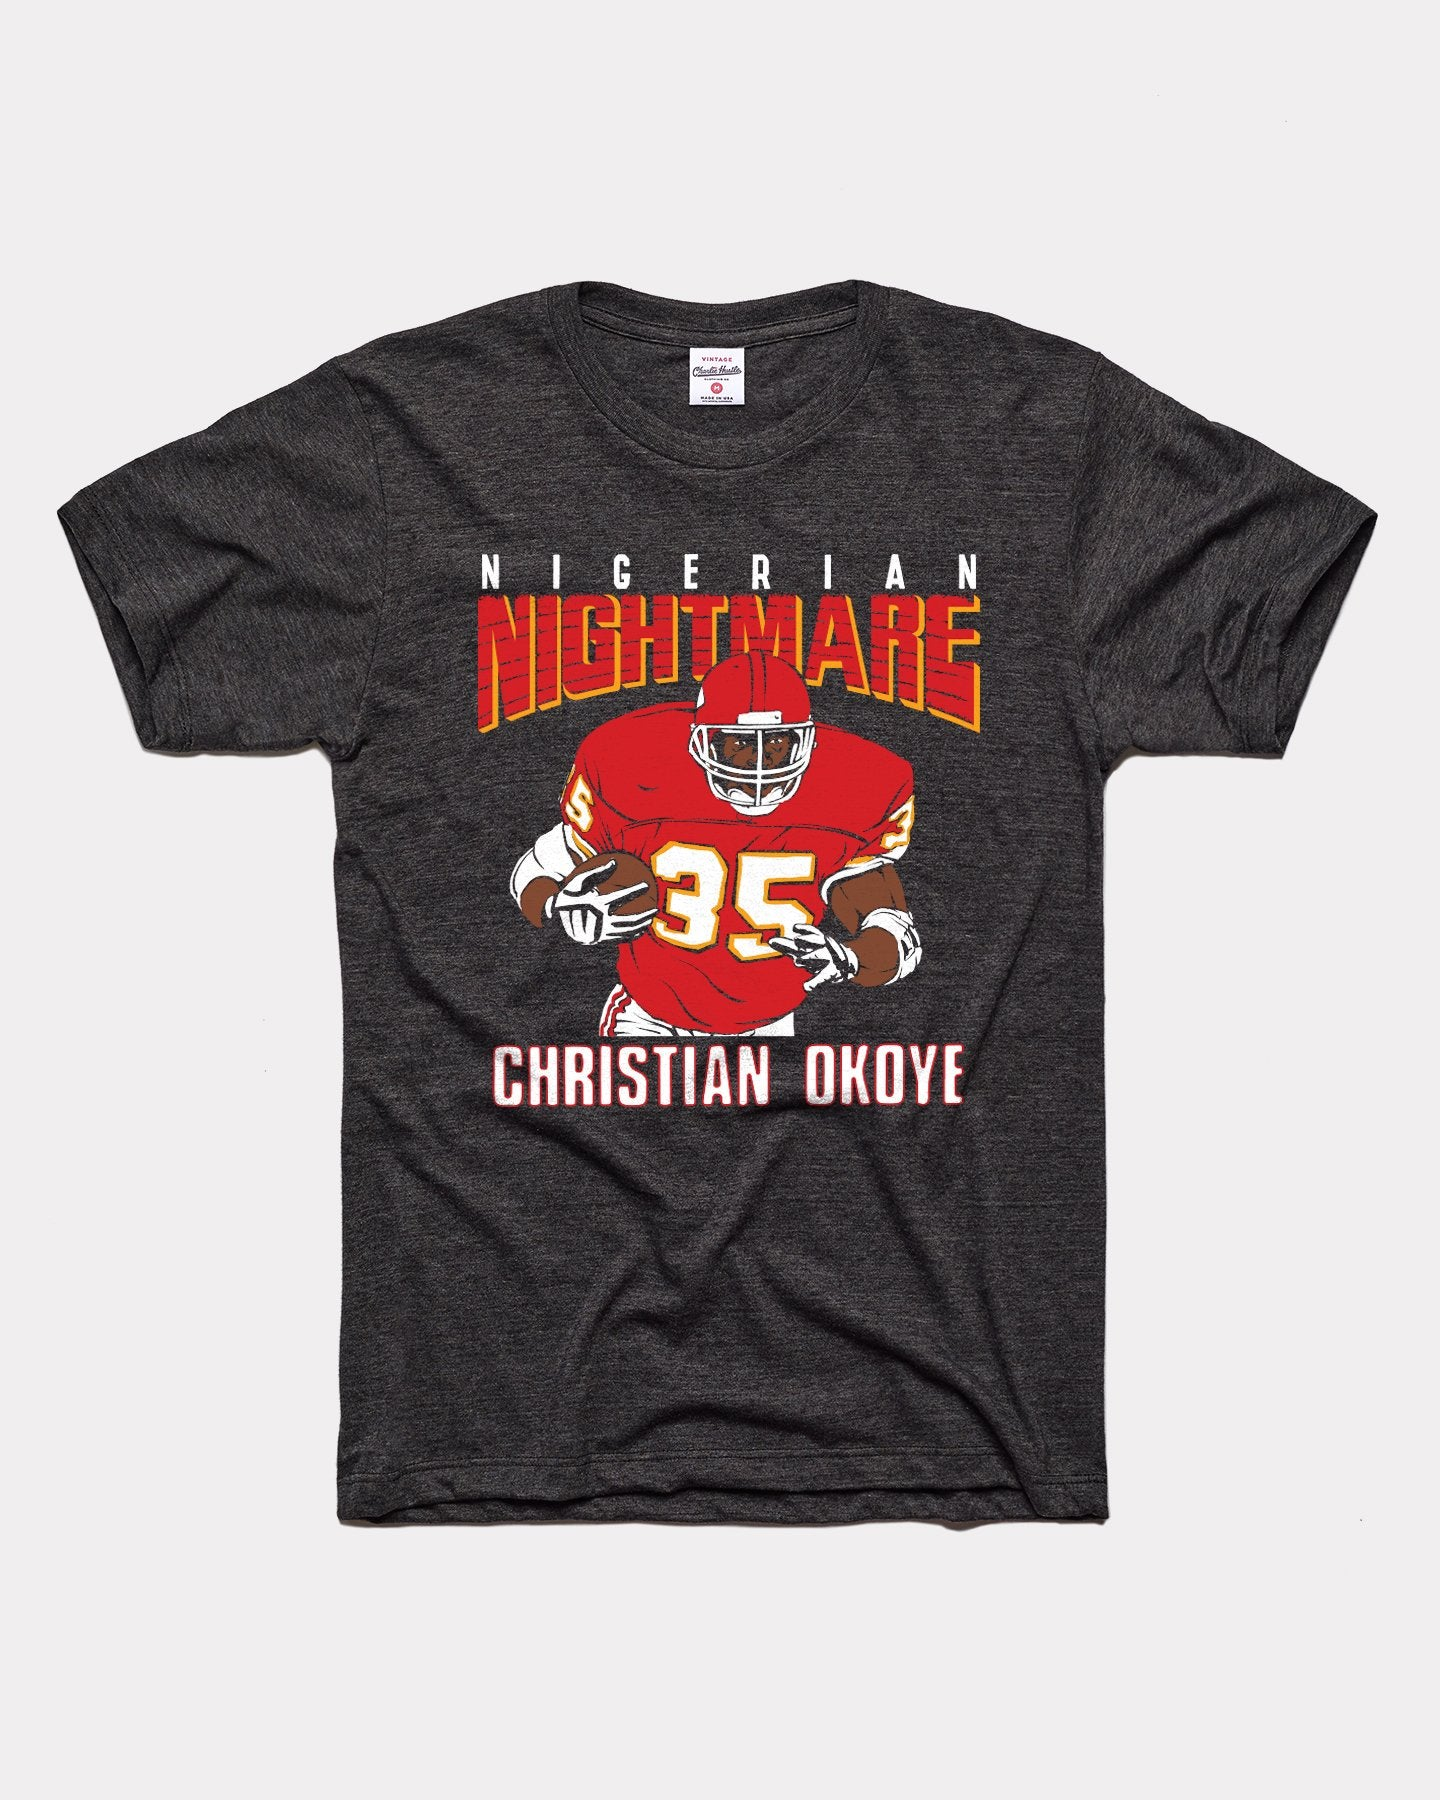 Black Christian Okoye Nigerian Nightmare Vintage T-Shirt